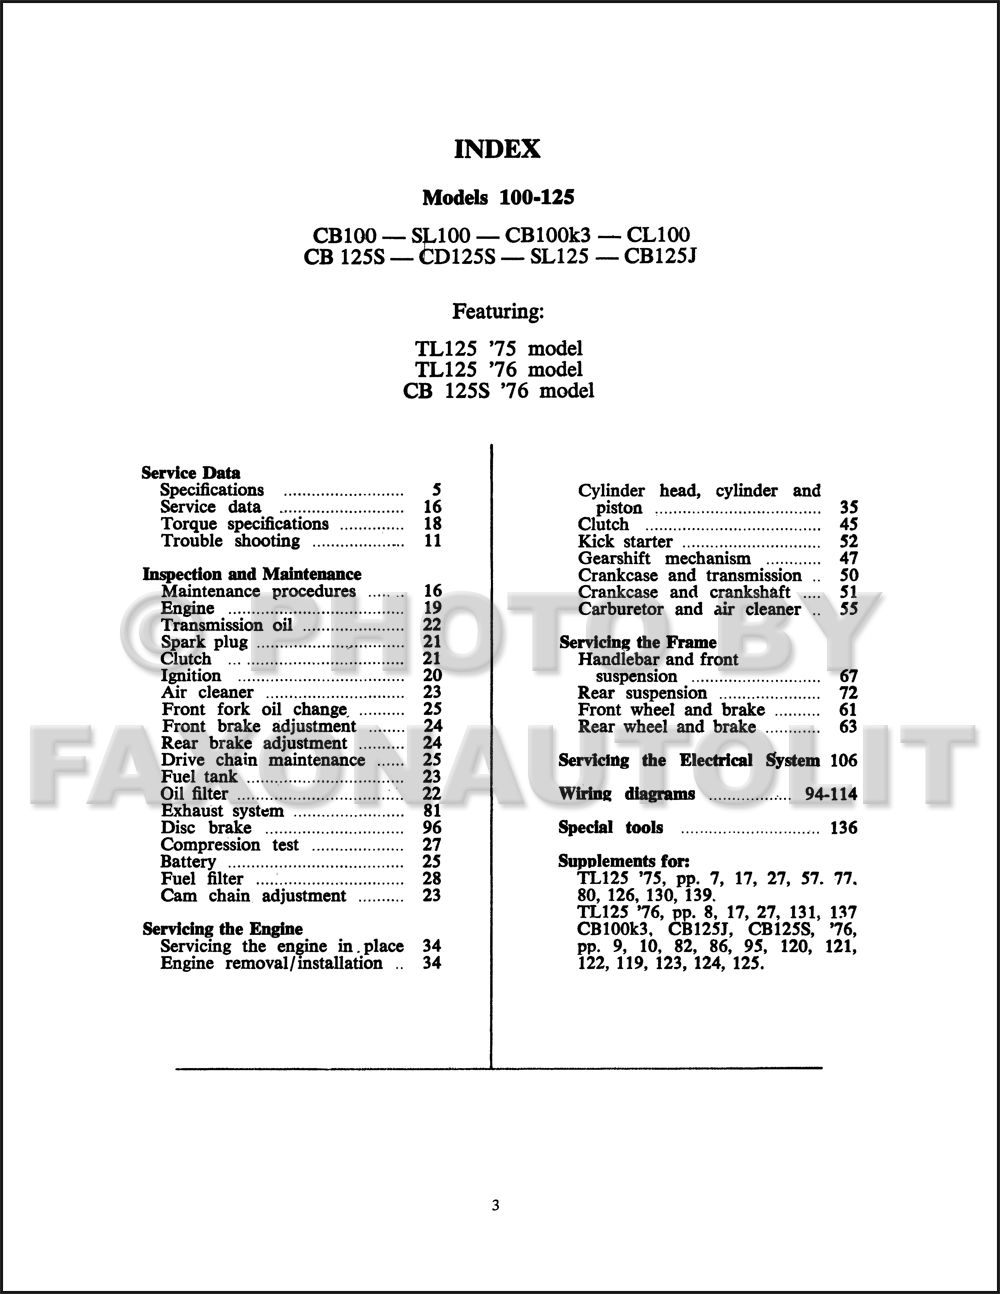 1970 76Honda100125CycleservRRMp3D TOC diagrams 952549 ih cub wiring diagram atis faq on farmall cubs farmall cub wiring diagram at fashall.co